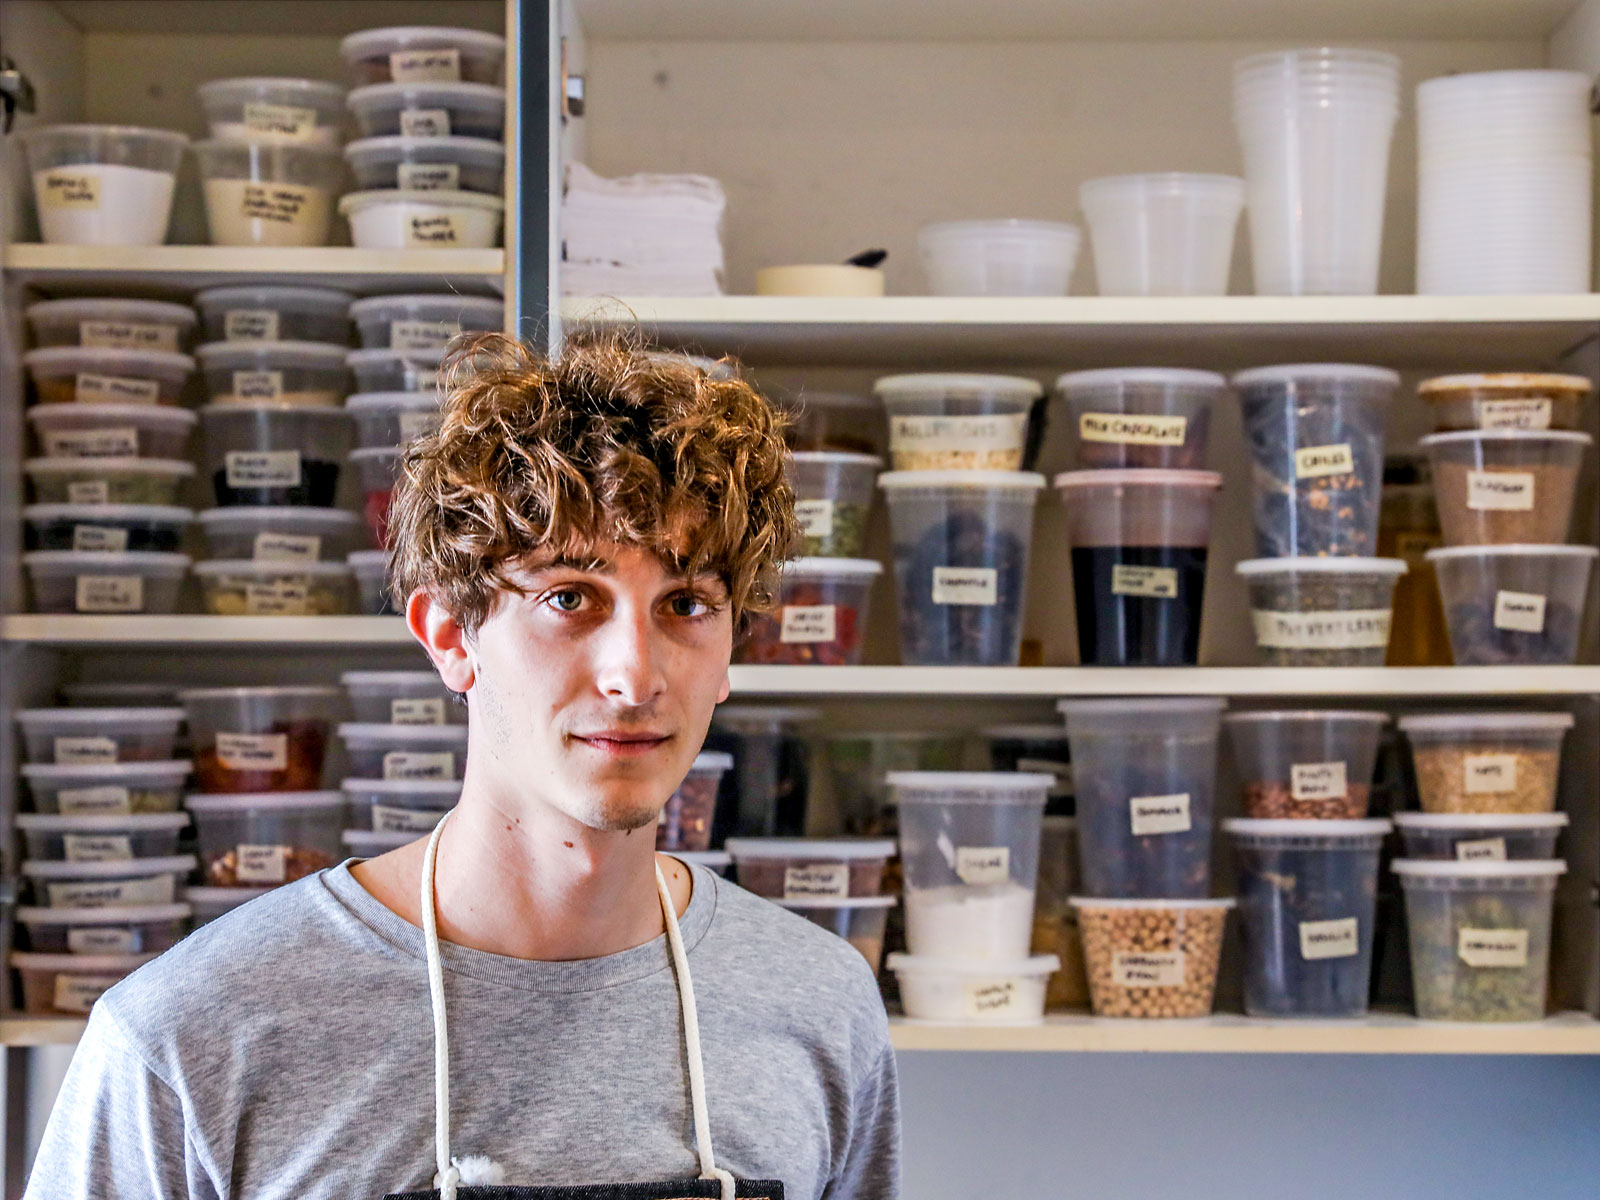 Chef Jonah Reider Containers To Be A More Creative Cook